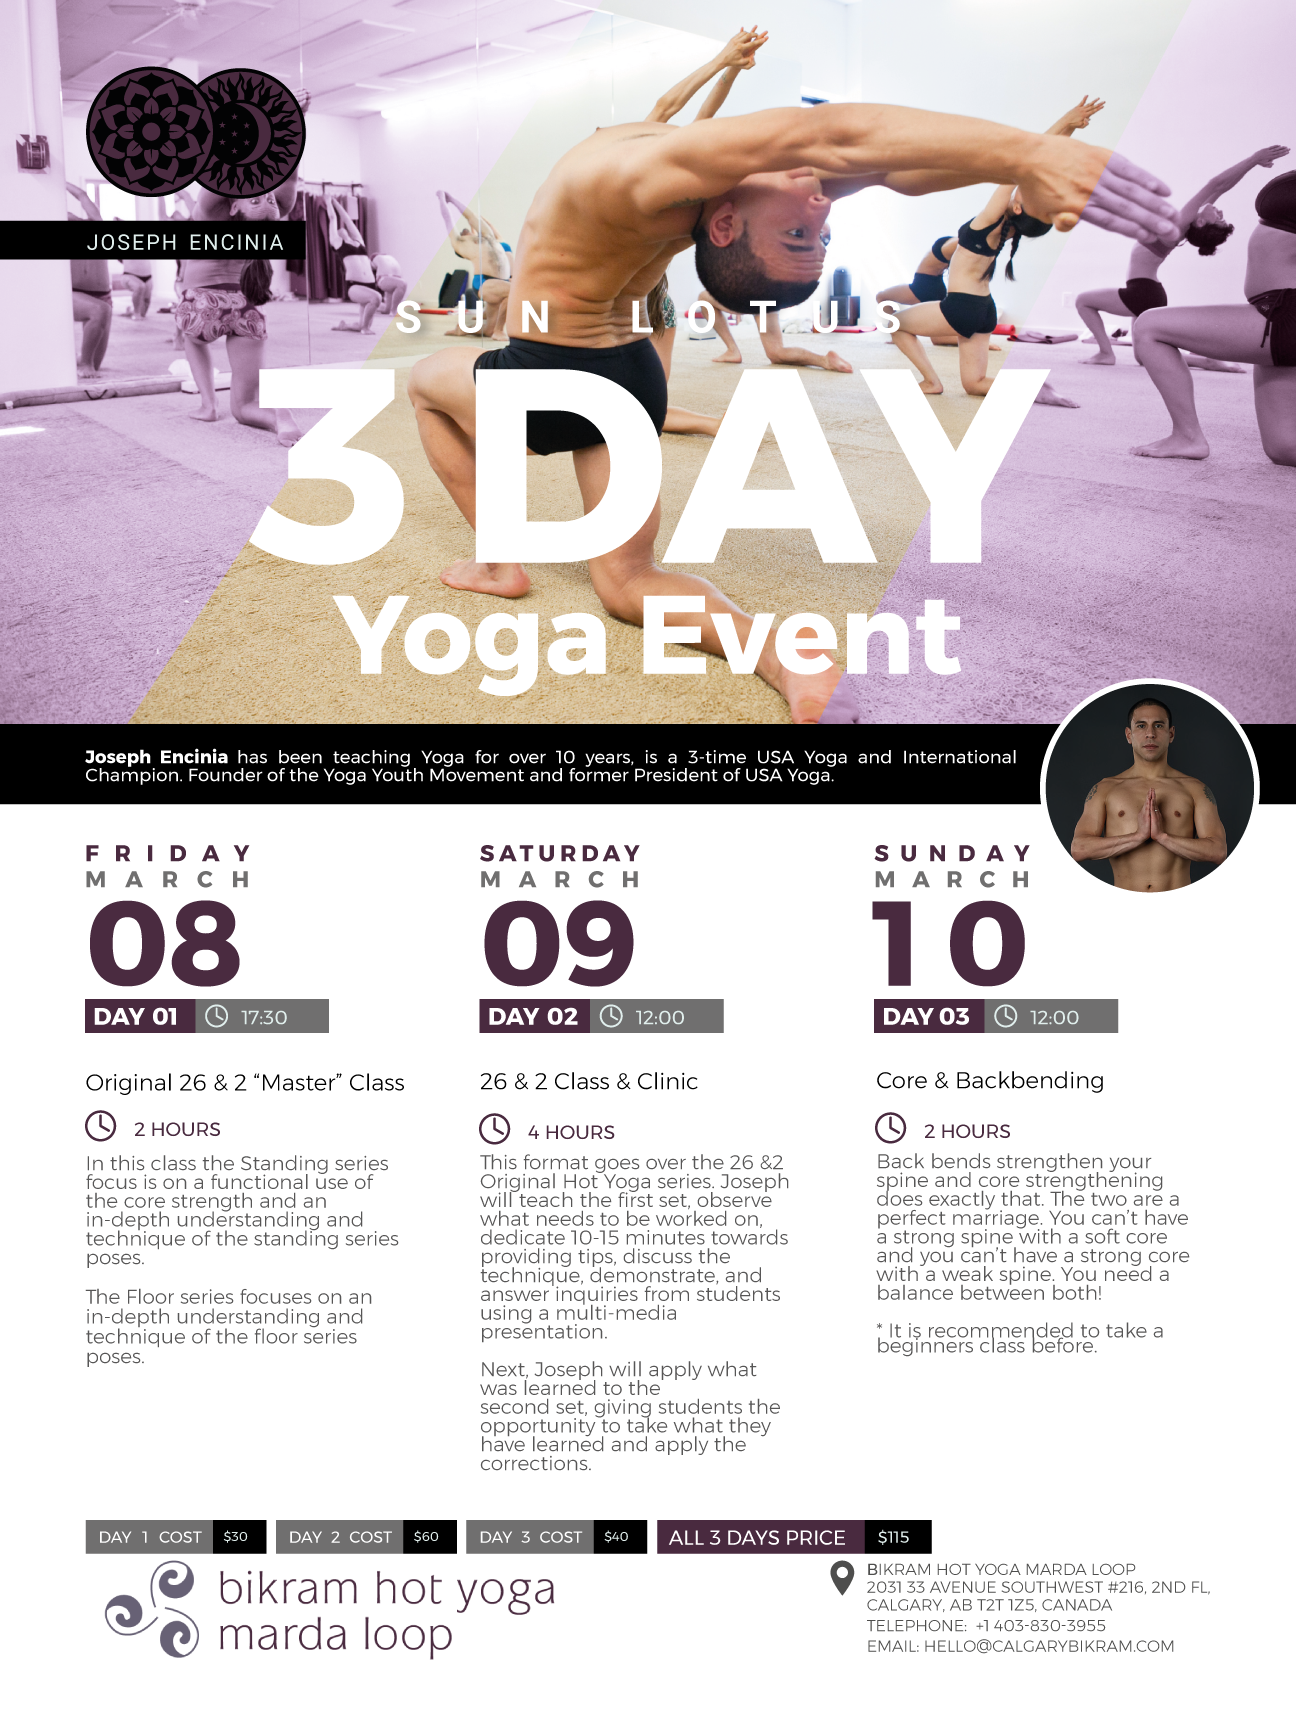 Calgary, Alberta | March 8 – 10, 2019 | 3 Day Yoga Event